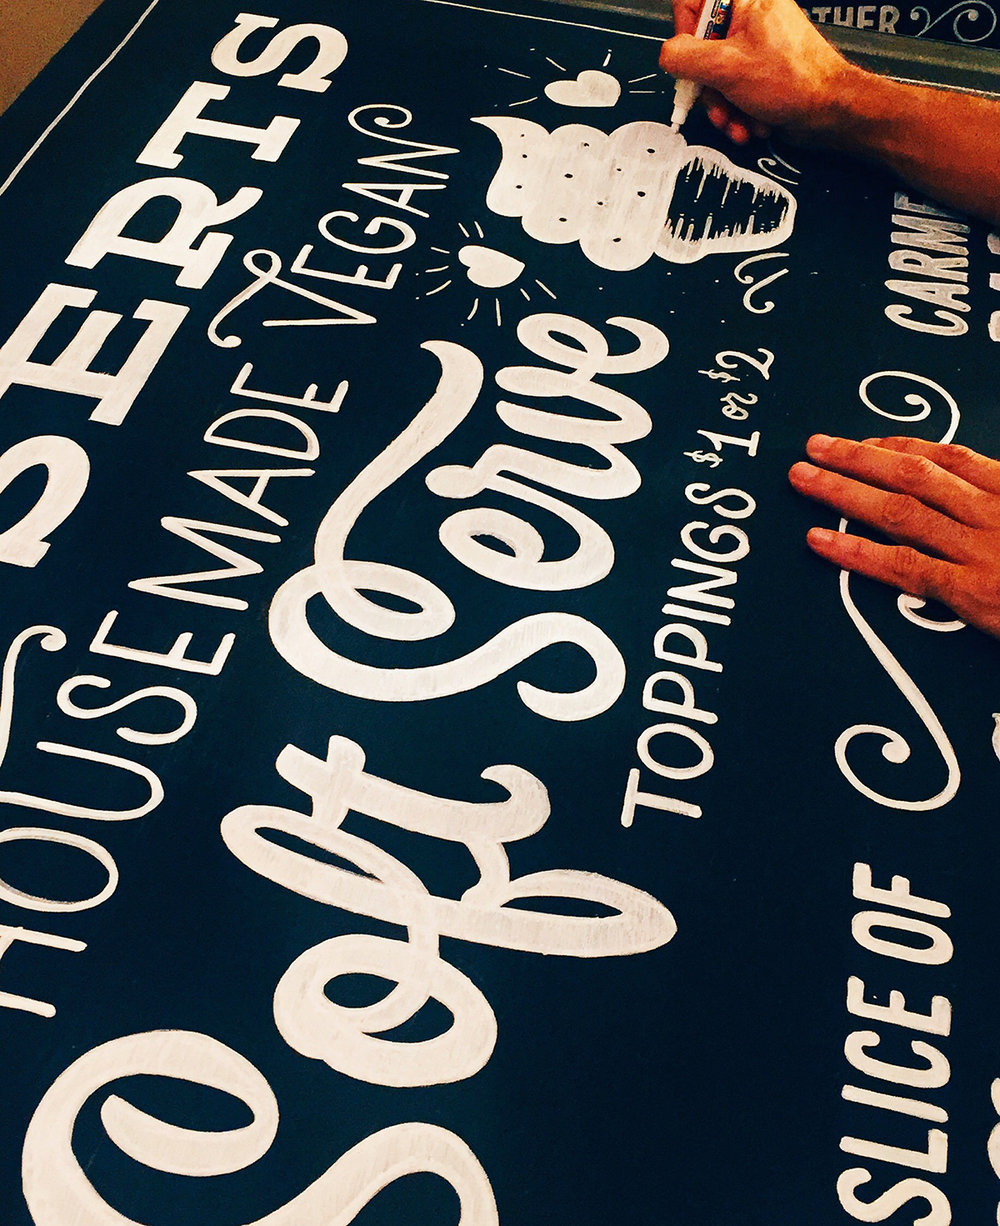 Chalk-lettering-menu-leo-gomez-studio-love-food-central-05.jpg